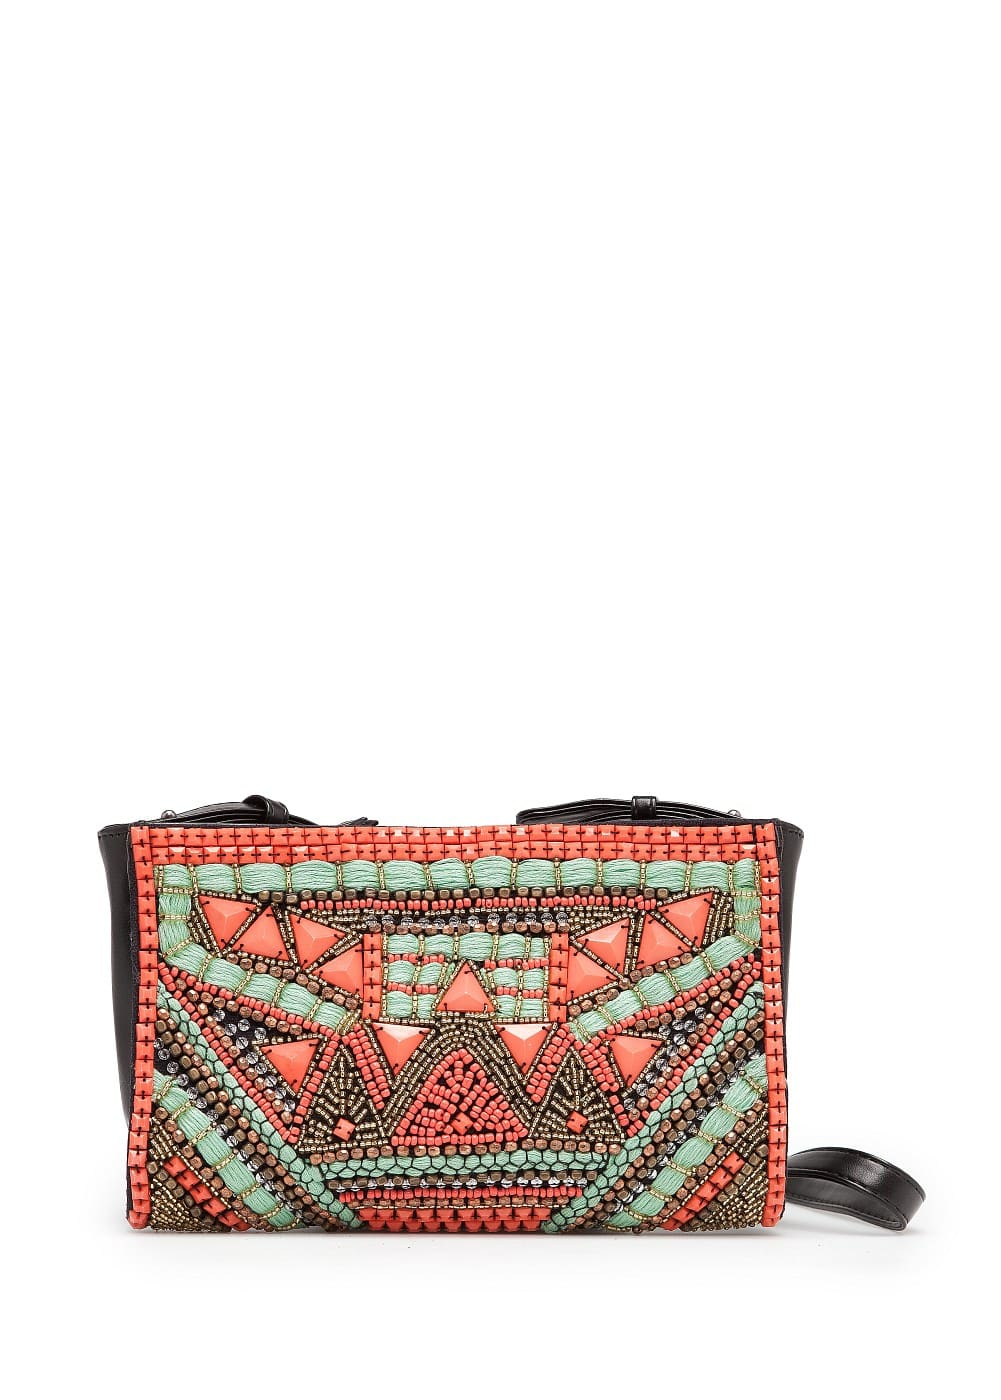 Tribal style bag